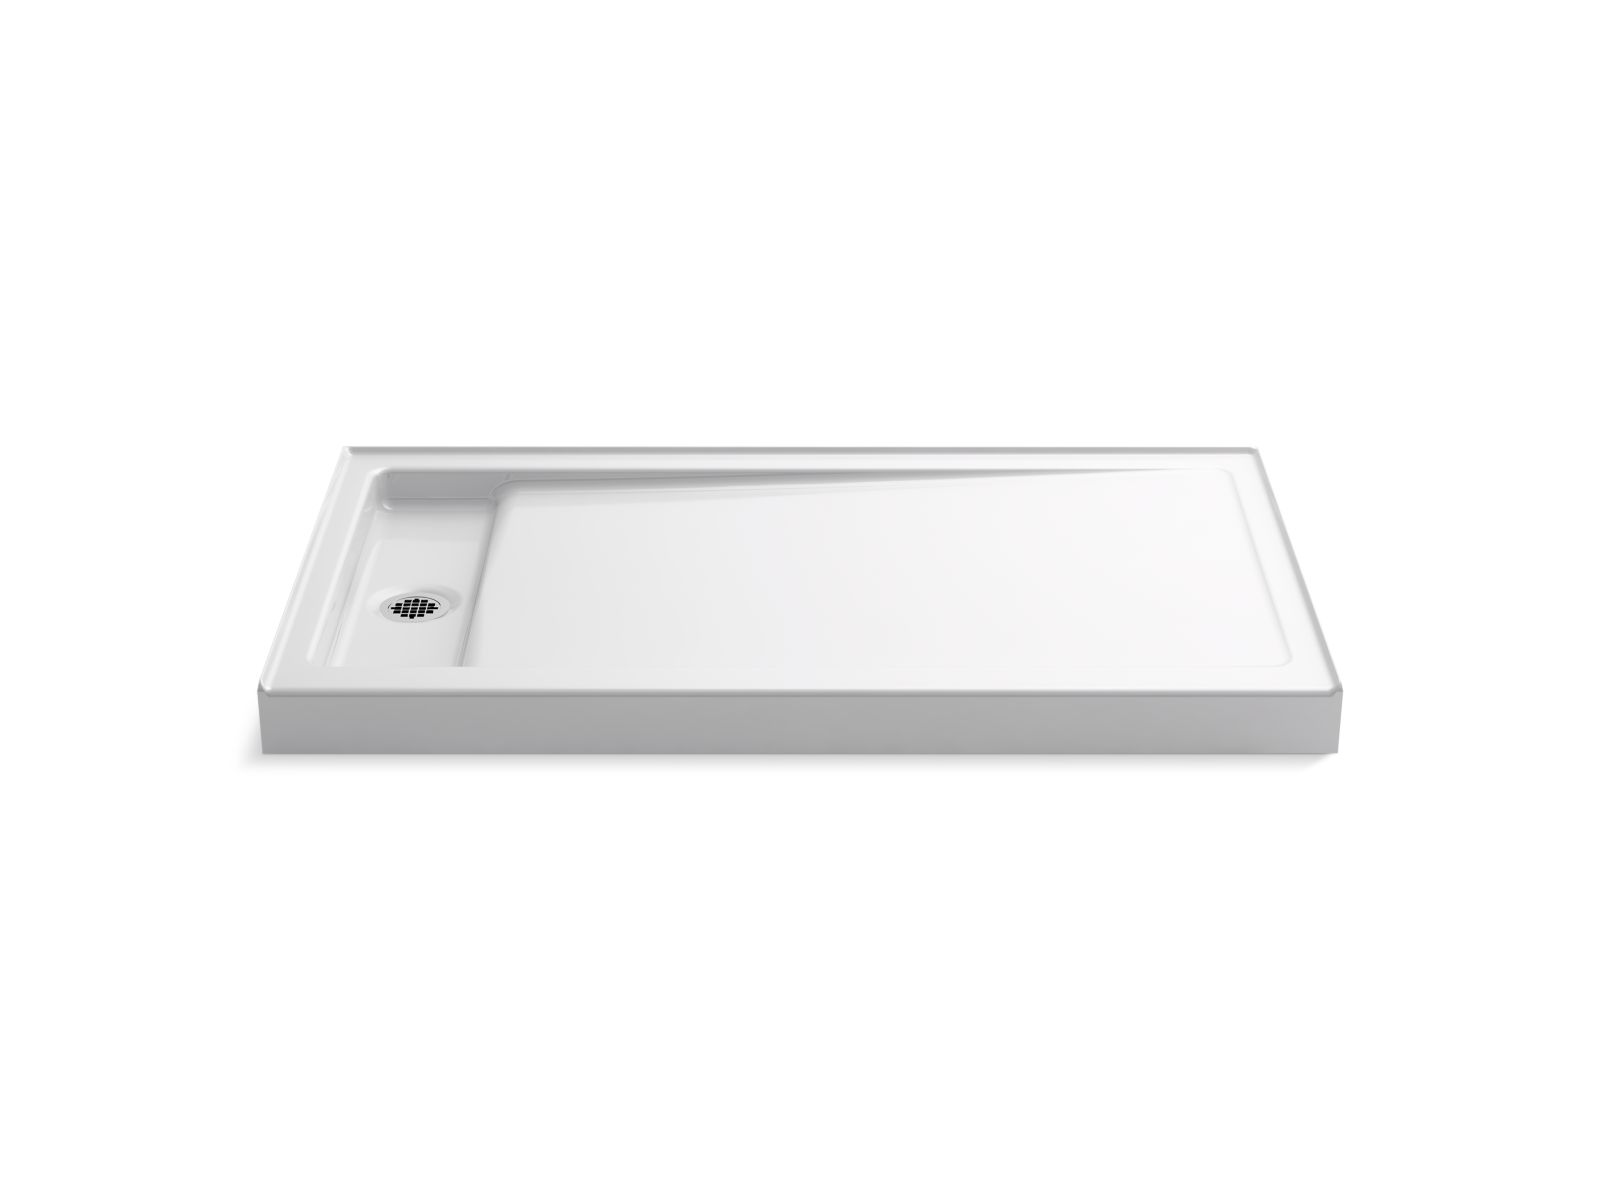 "Kohler Bellwether® K-9177-0 60"" x 34"" single-threshold shower base with left center drain White"